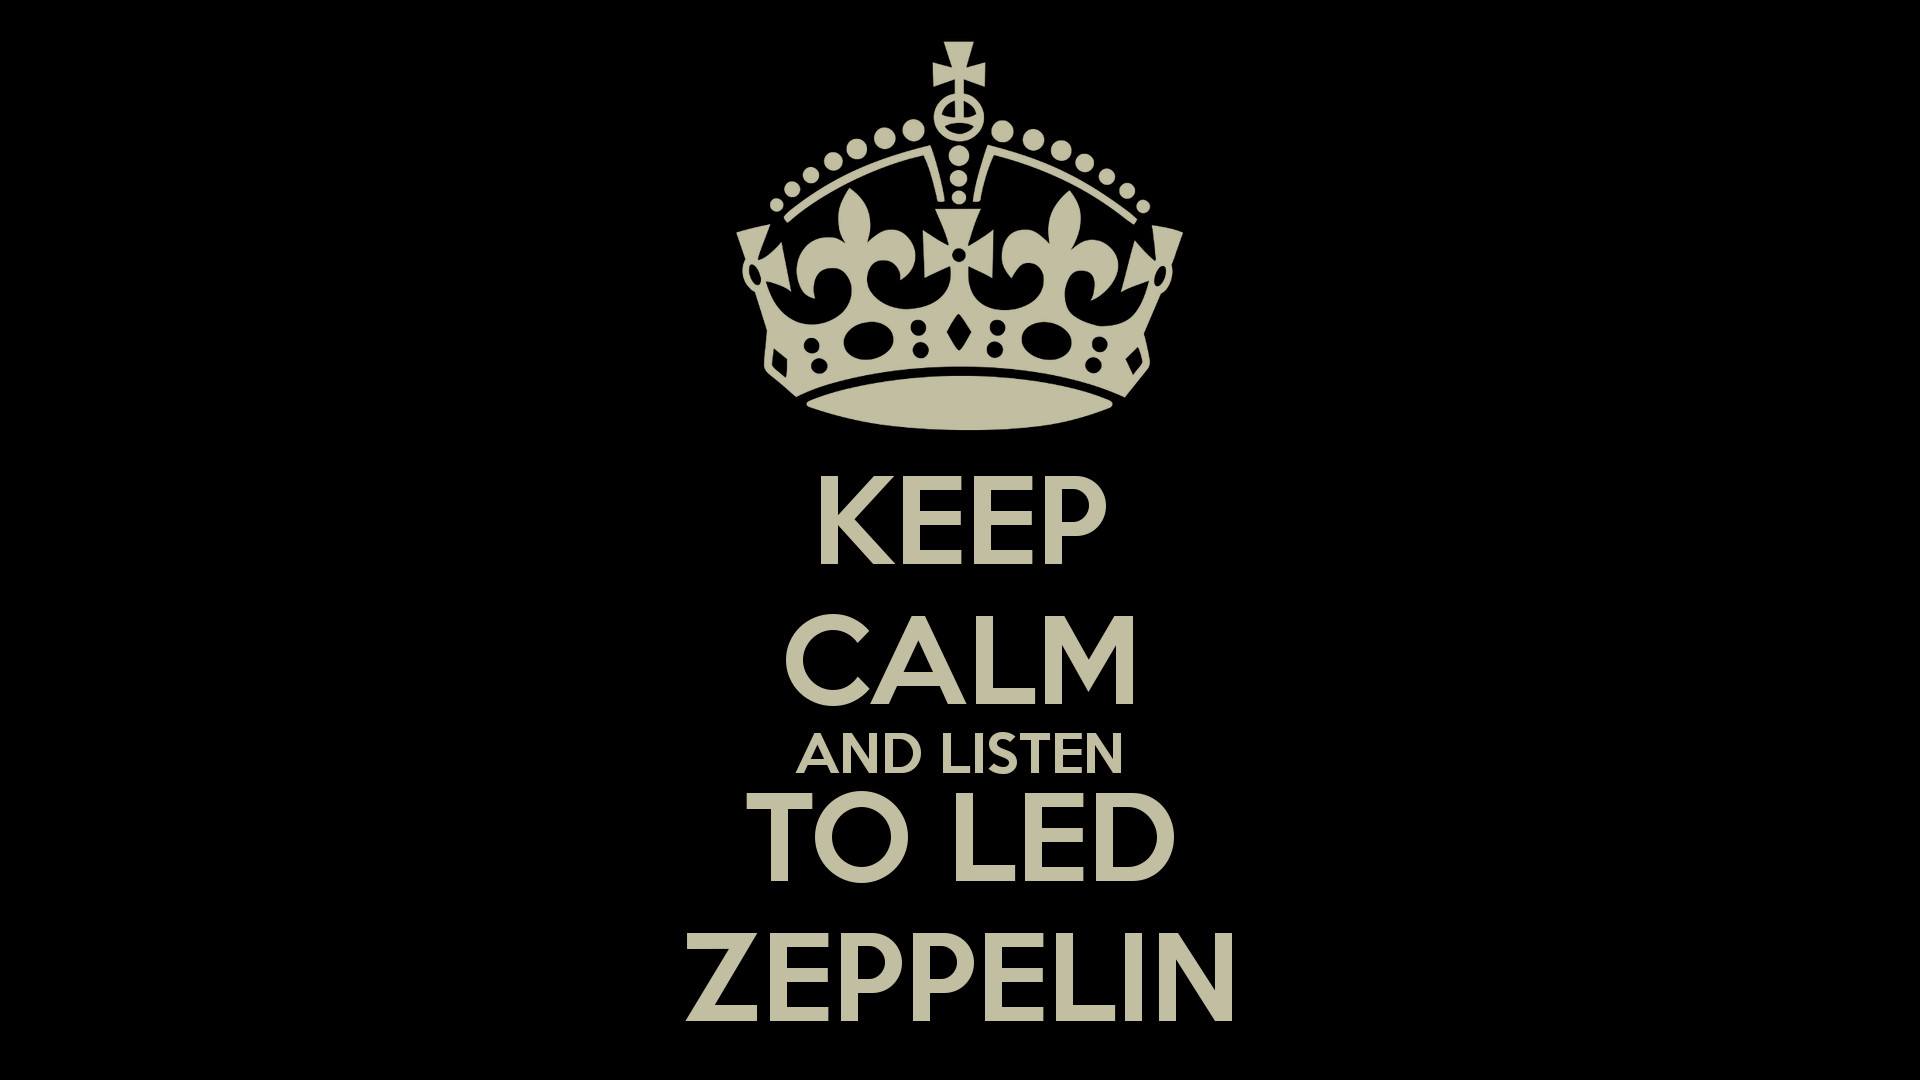 Led Zeppelin Backgrounds 183 ① Wallpapertag